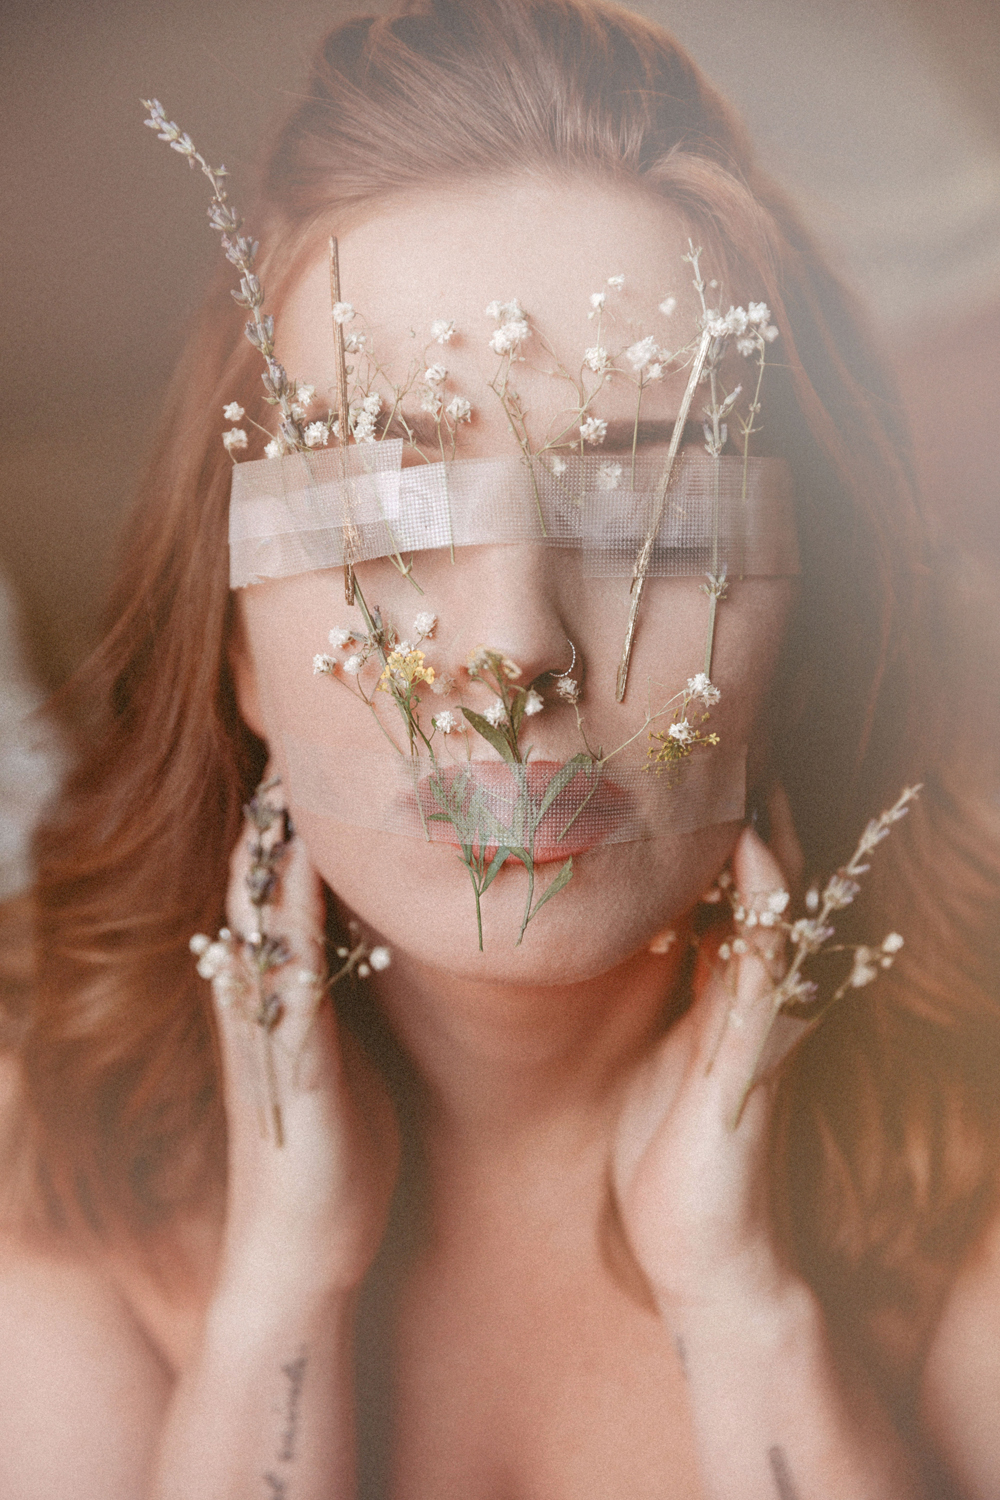 Naples Branding Photographer, woman with wild flowers taped over her mouth and eyes